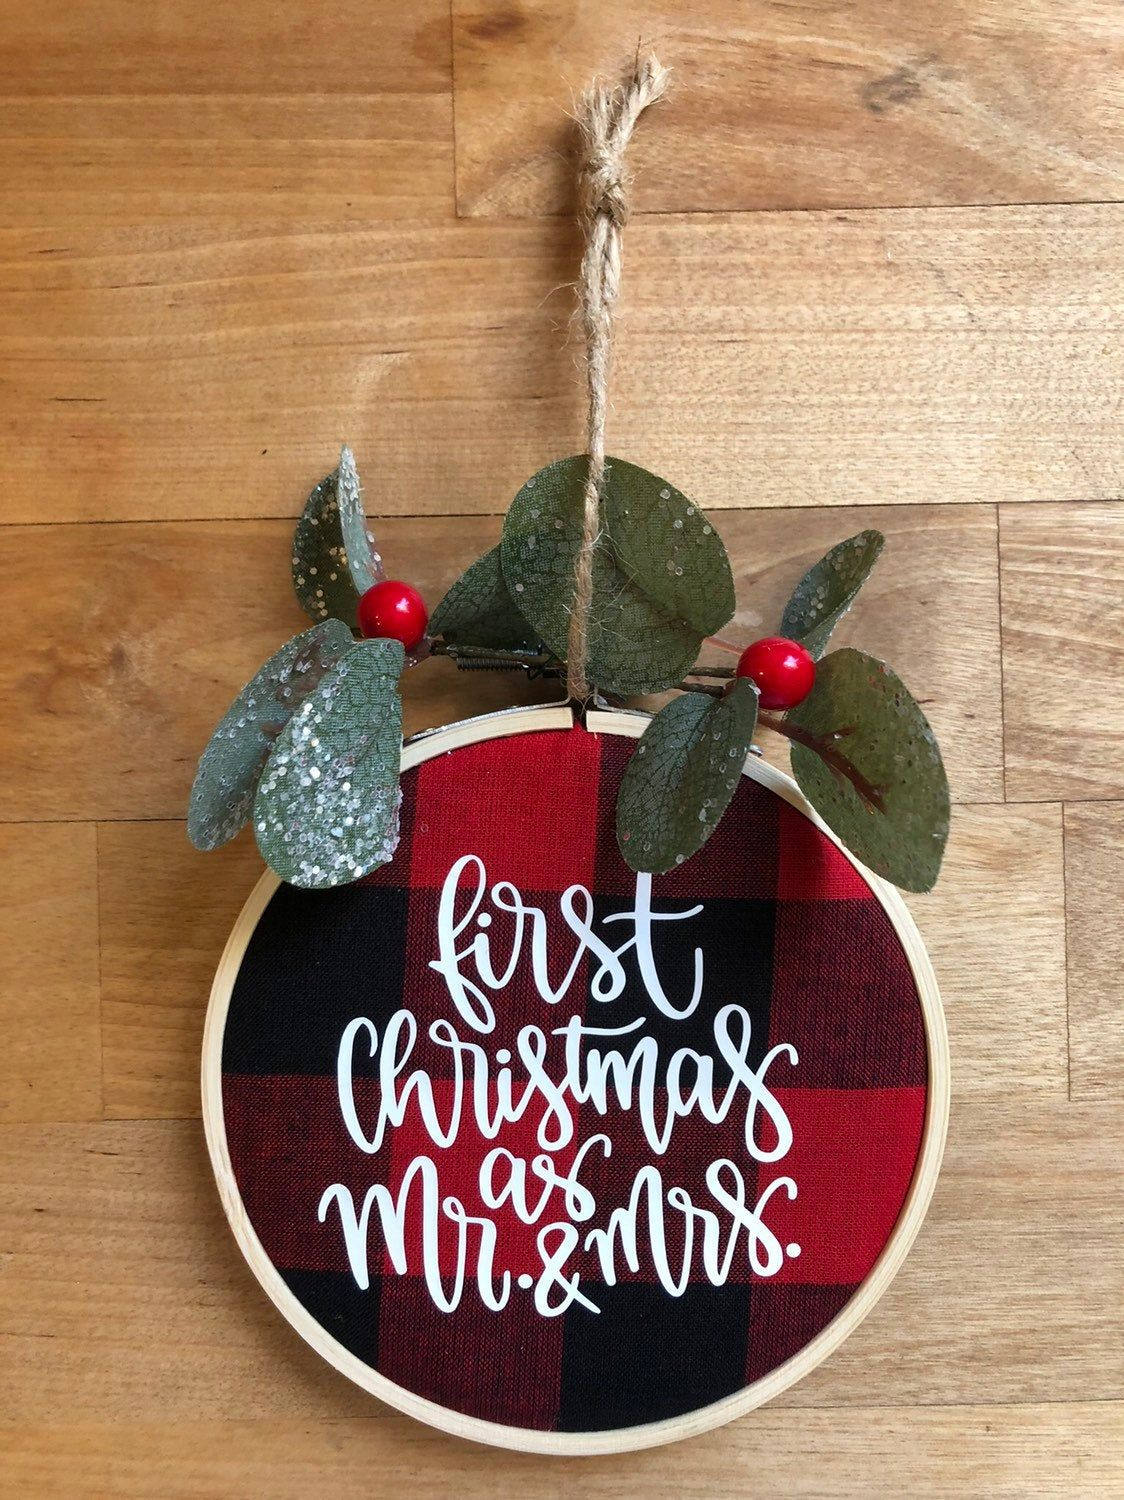 Personalized Embroidery Hoop Christmas Ornament First